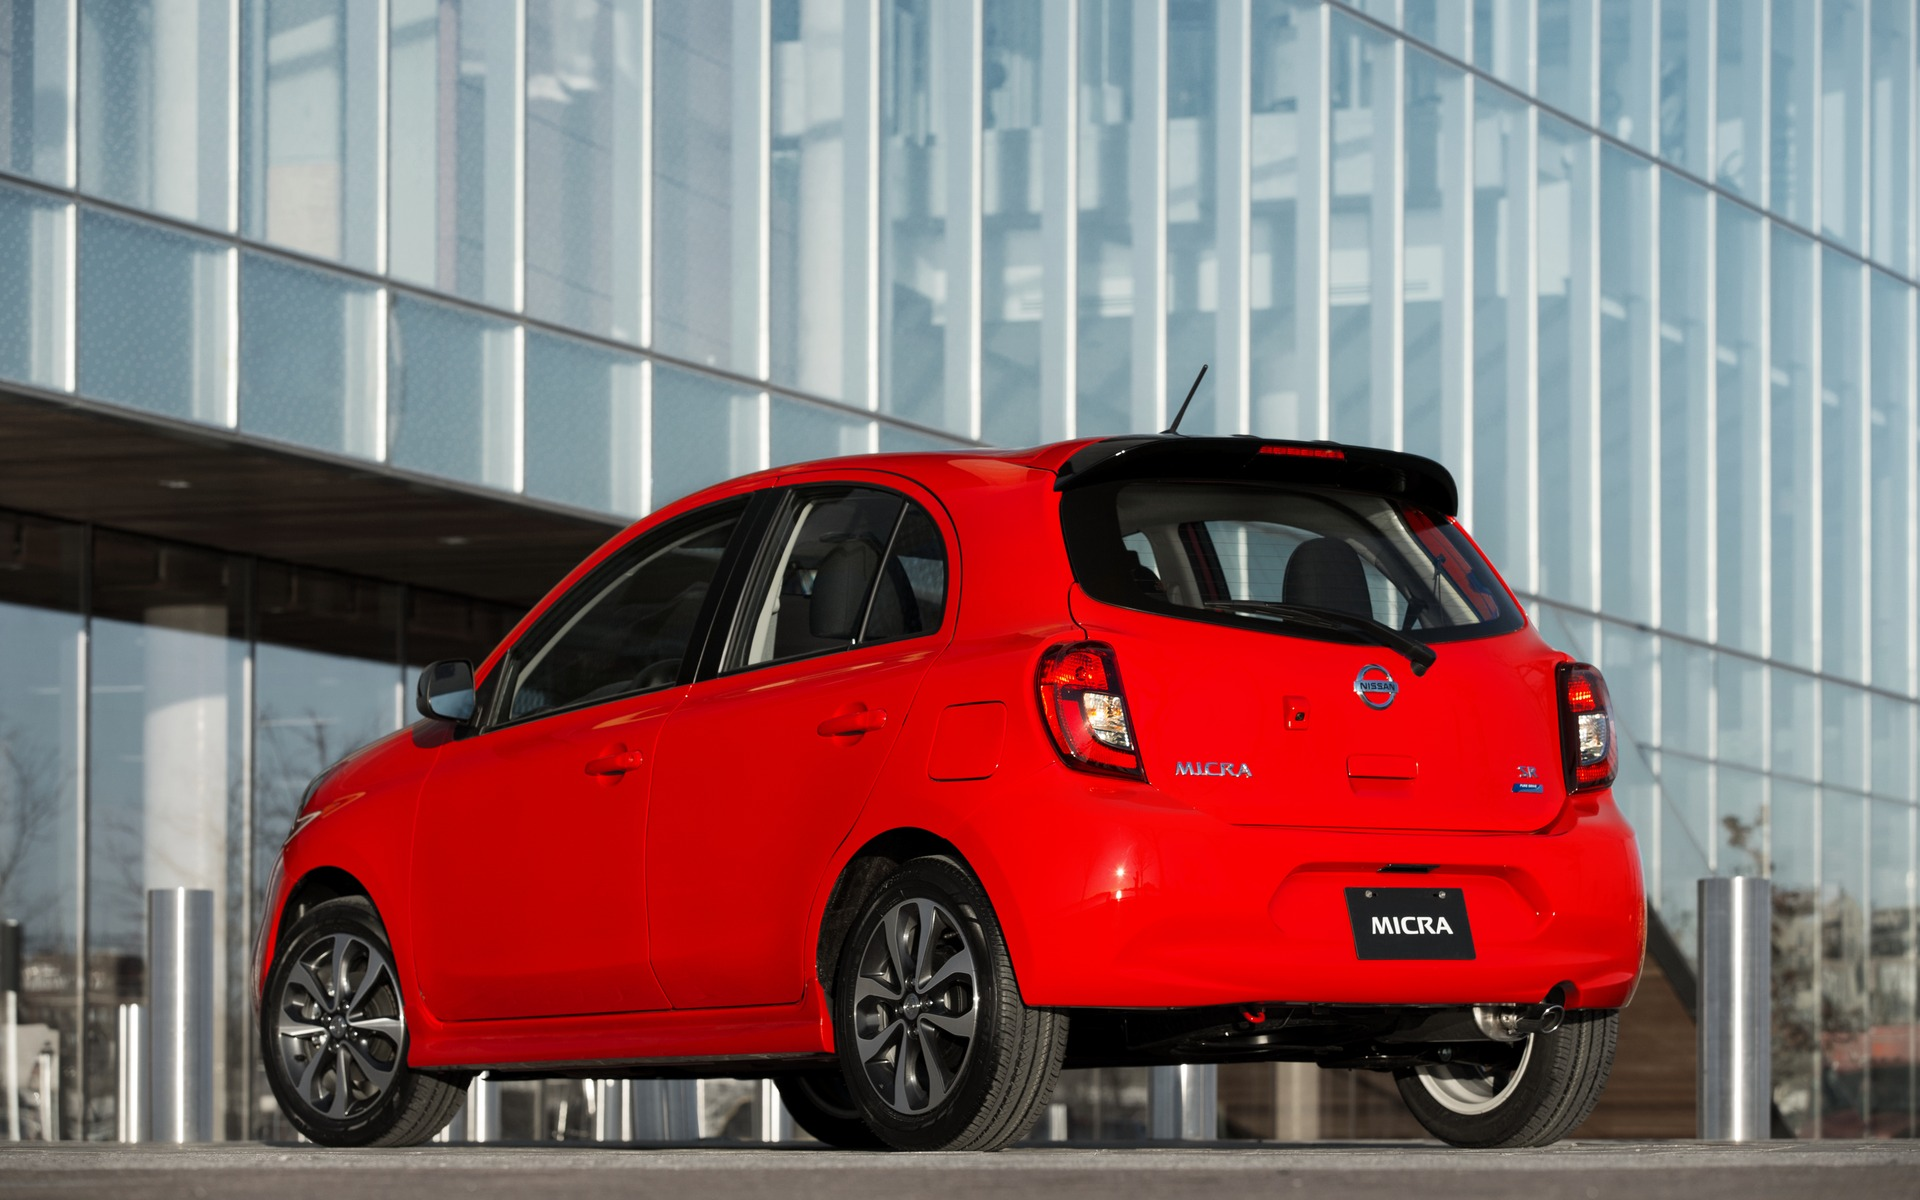 2019 nissan micra s price engine full technical specifications Nissan Micra 2018 Interior 2019 nissan micra 1